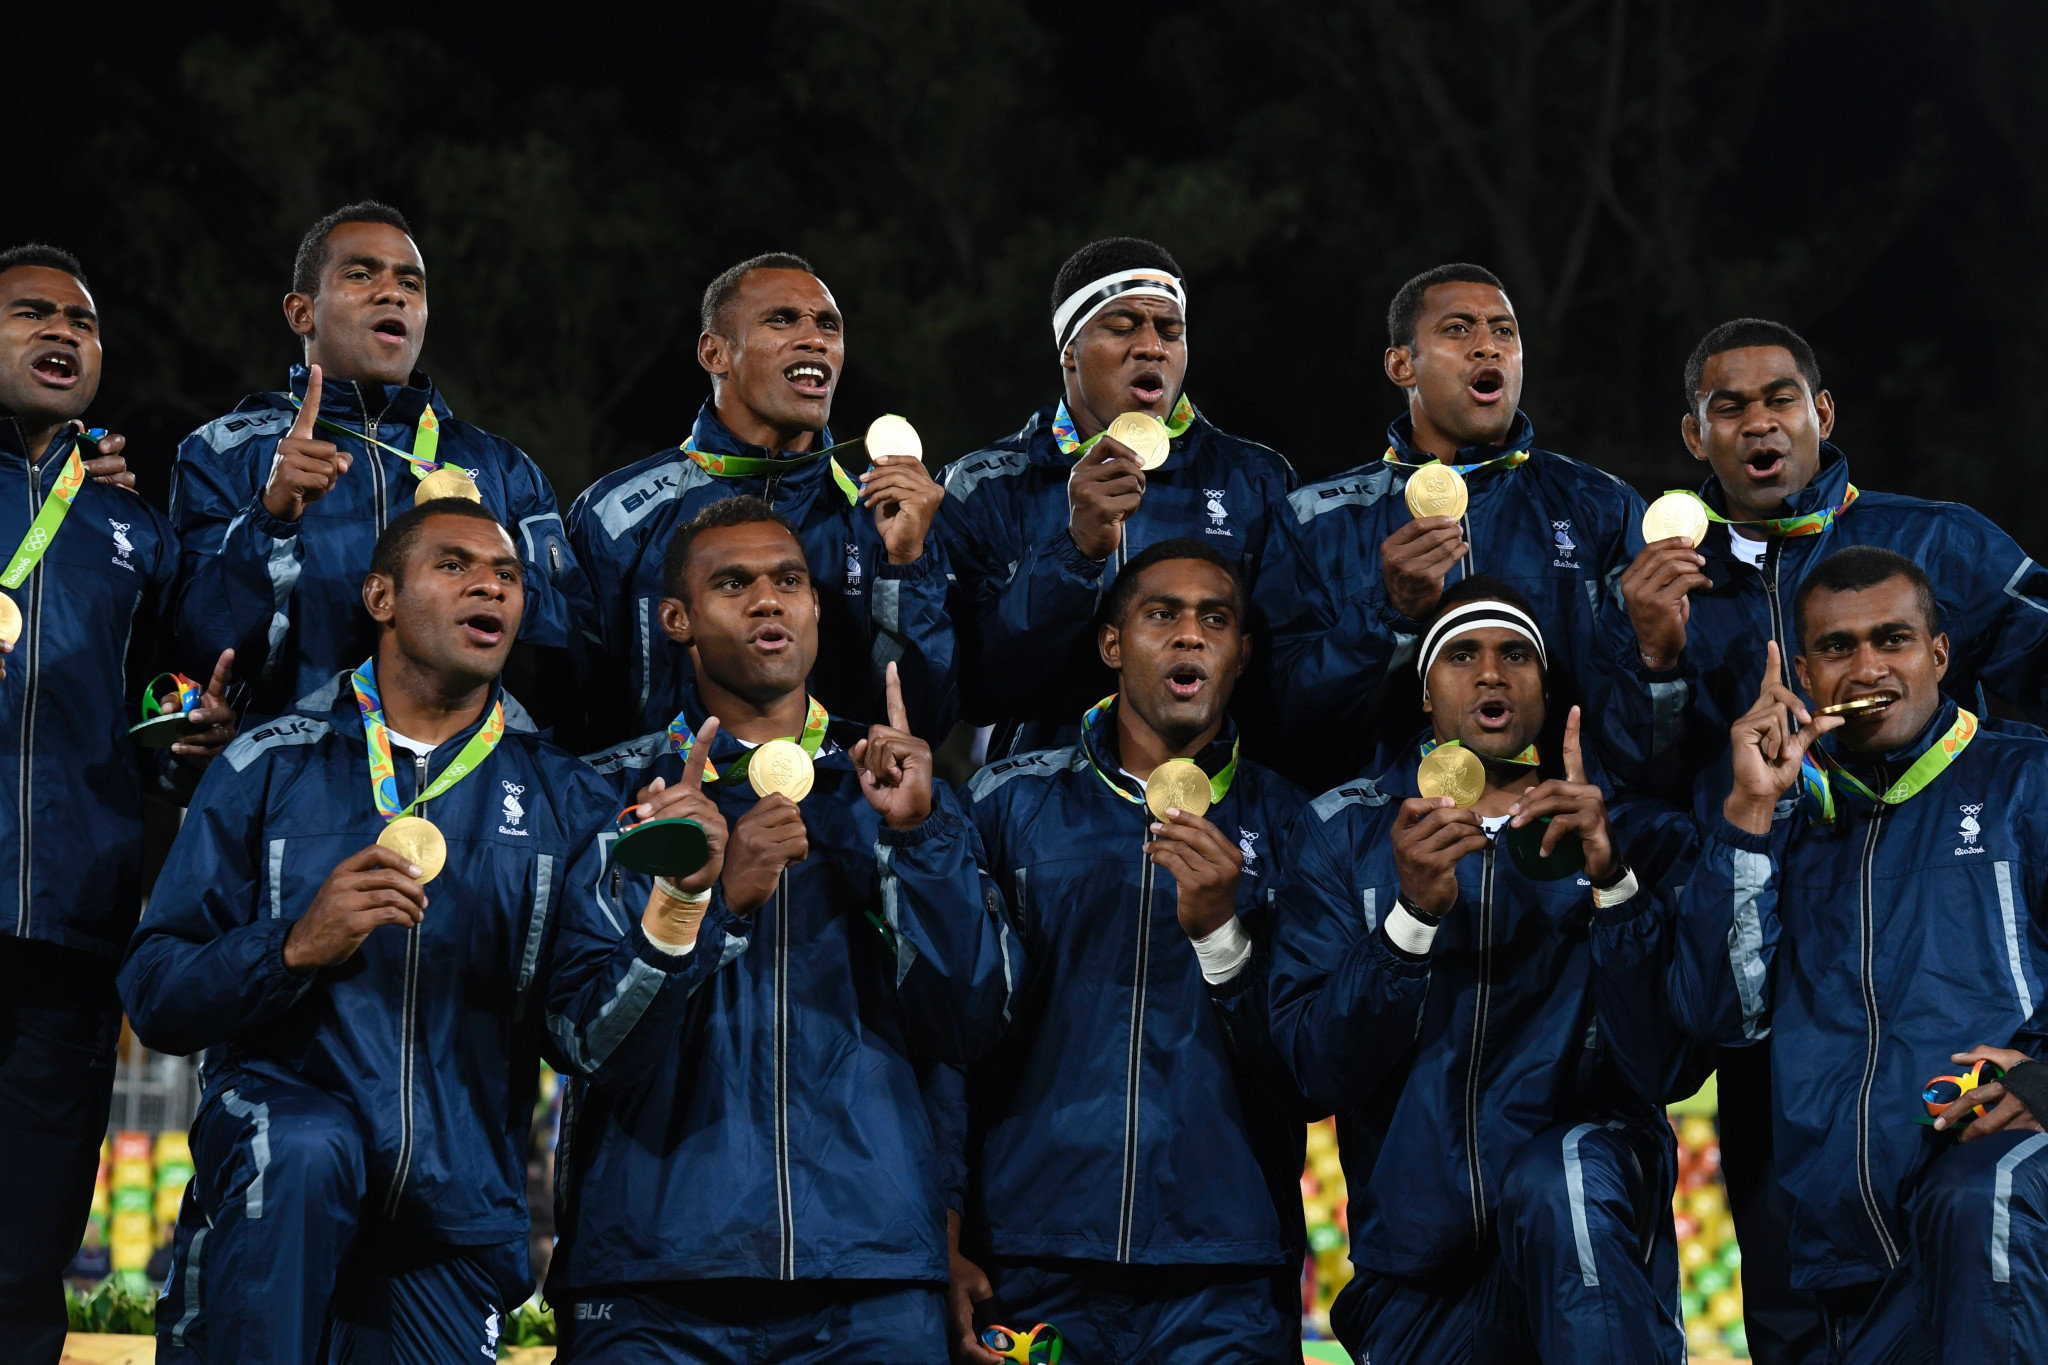 Fiji's rugby sevens team earned the country's first Olympic gold at Rio 2016 ©Getty Images